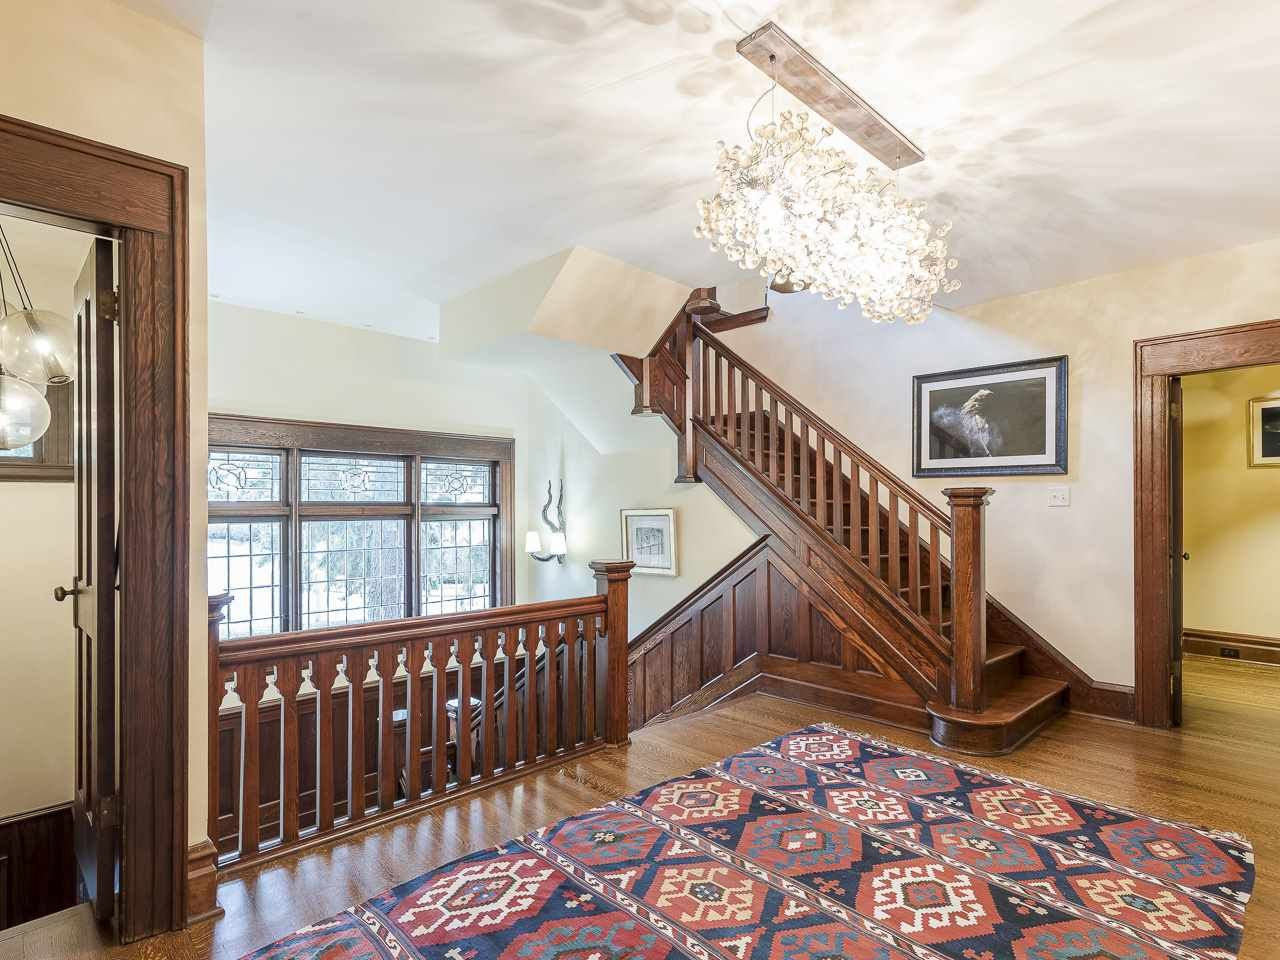 Photo 10: Photos: 3369 THE CRESCENT in Vancouver: Shaughnessy House for sale (Vancouver West)  : MLS®# R2534743